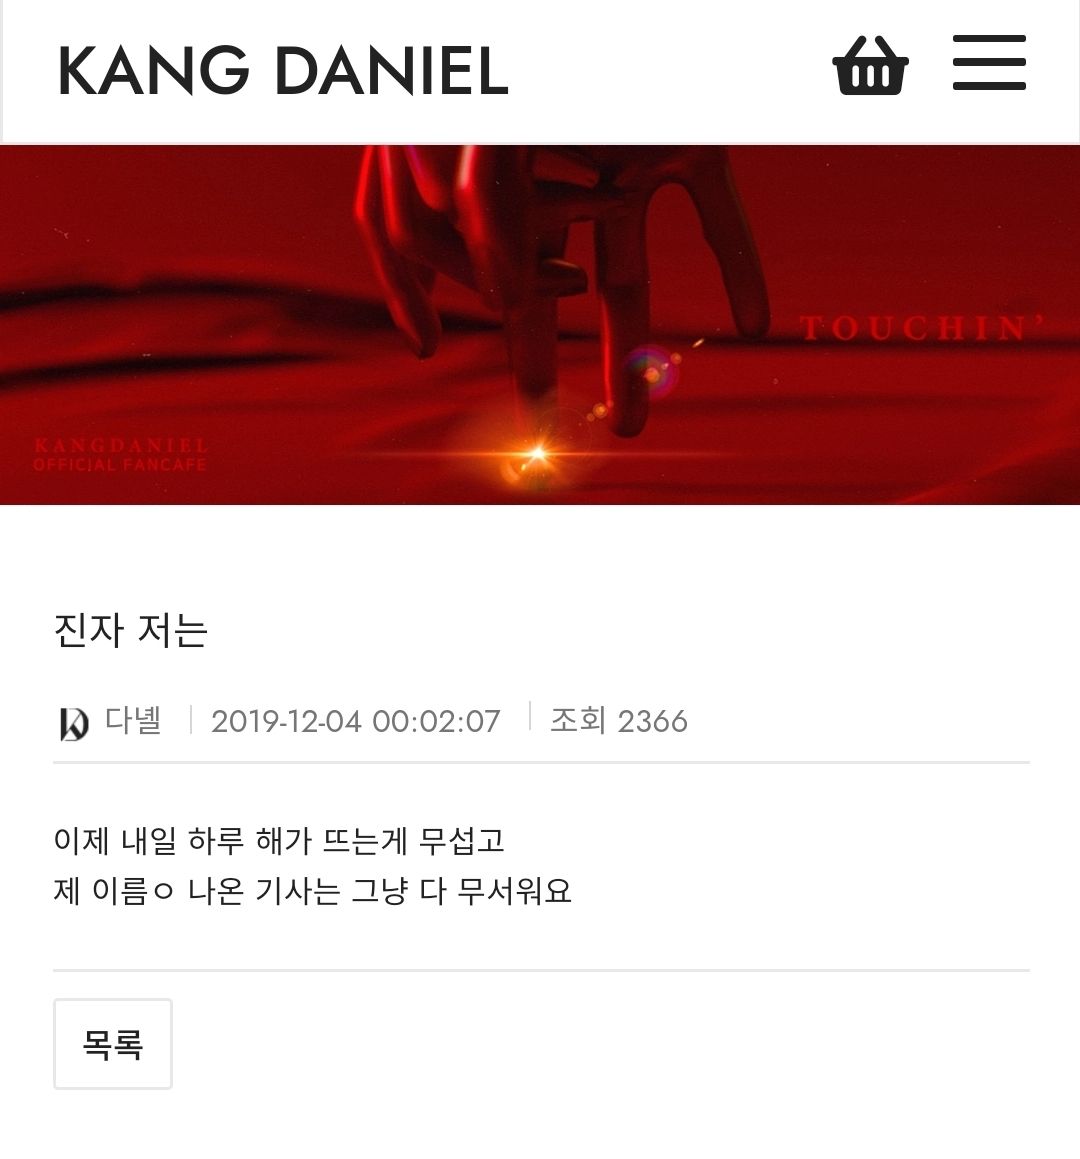 kang daniel fancafe post 4